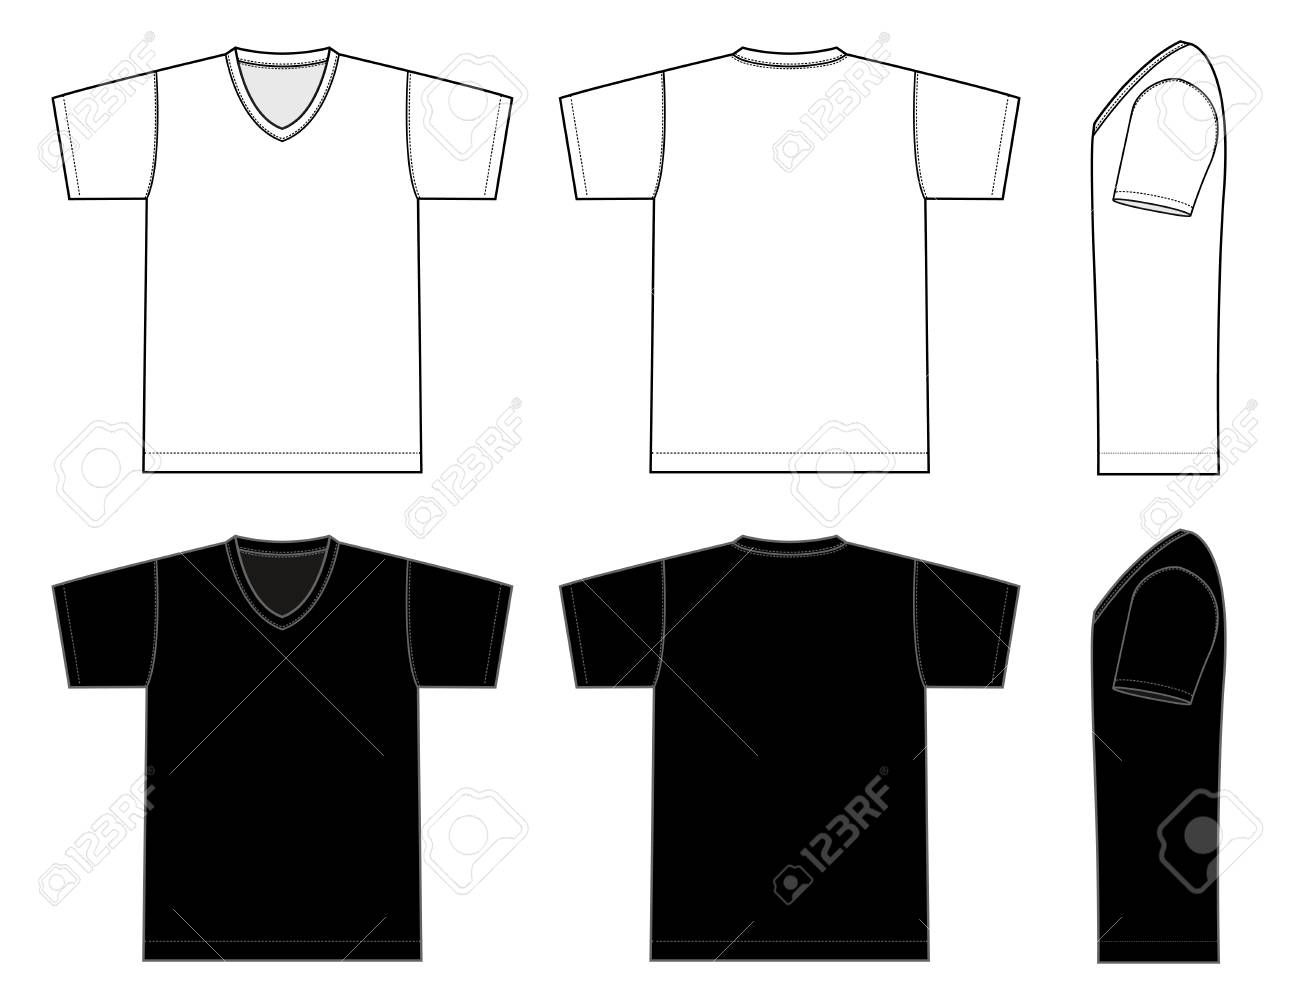 002 Incredible T Shirt Template Vector Sample  Black Front And Back Free Download IllustratorFull